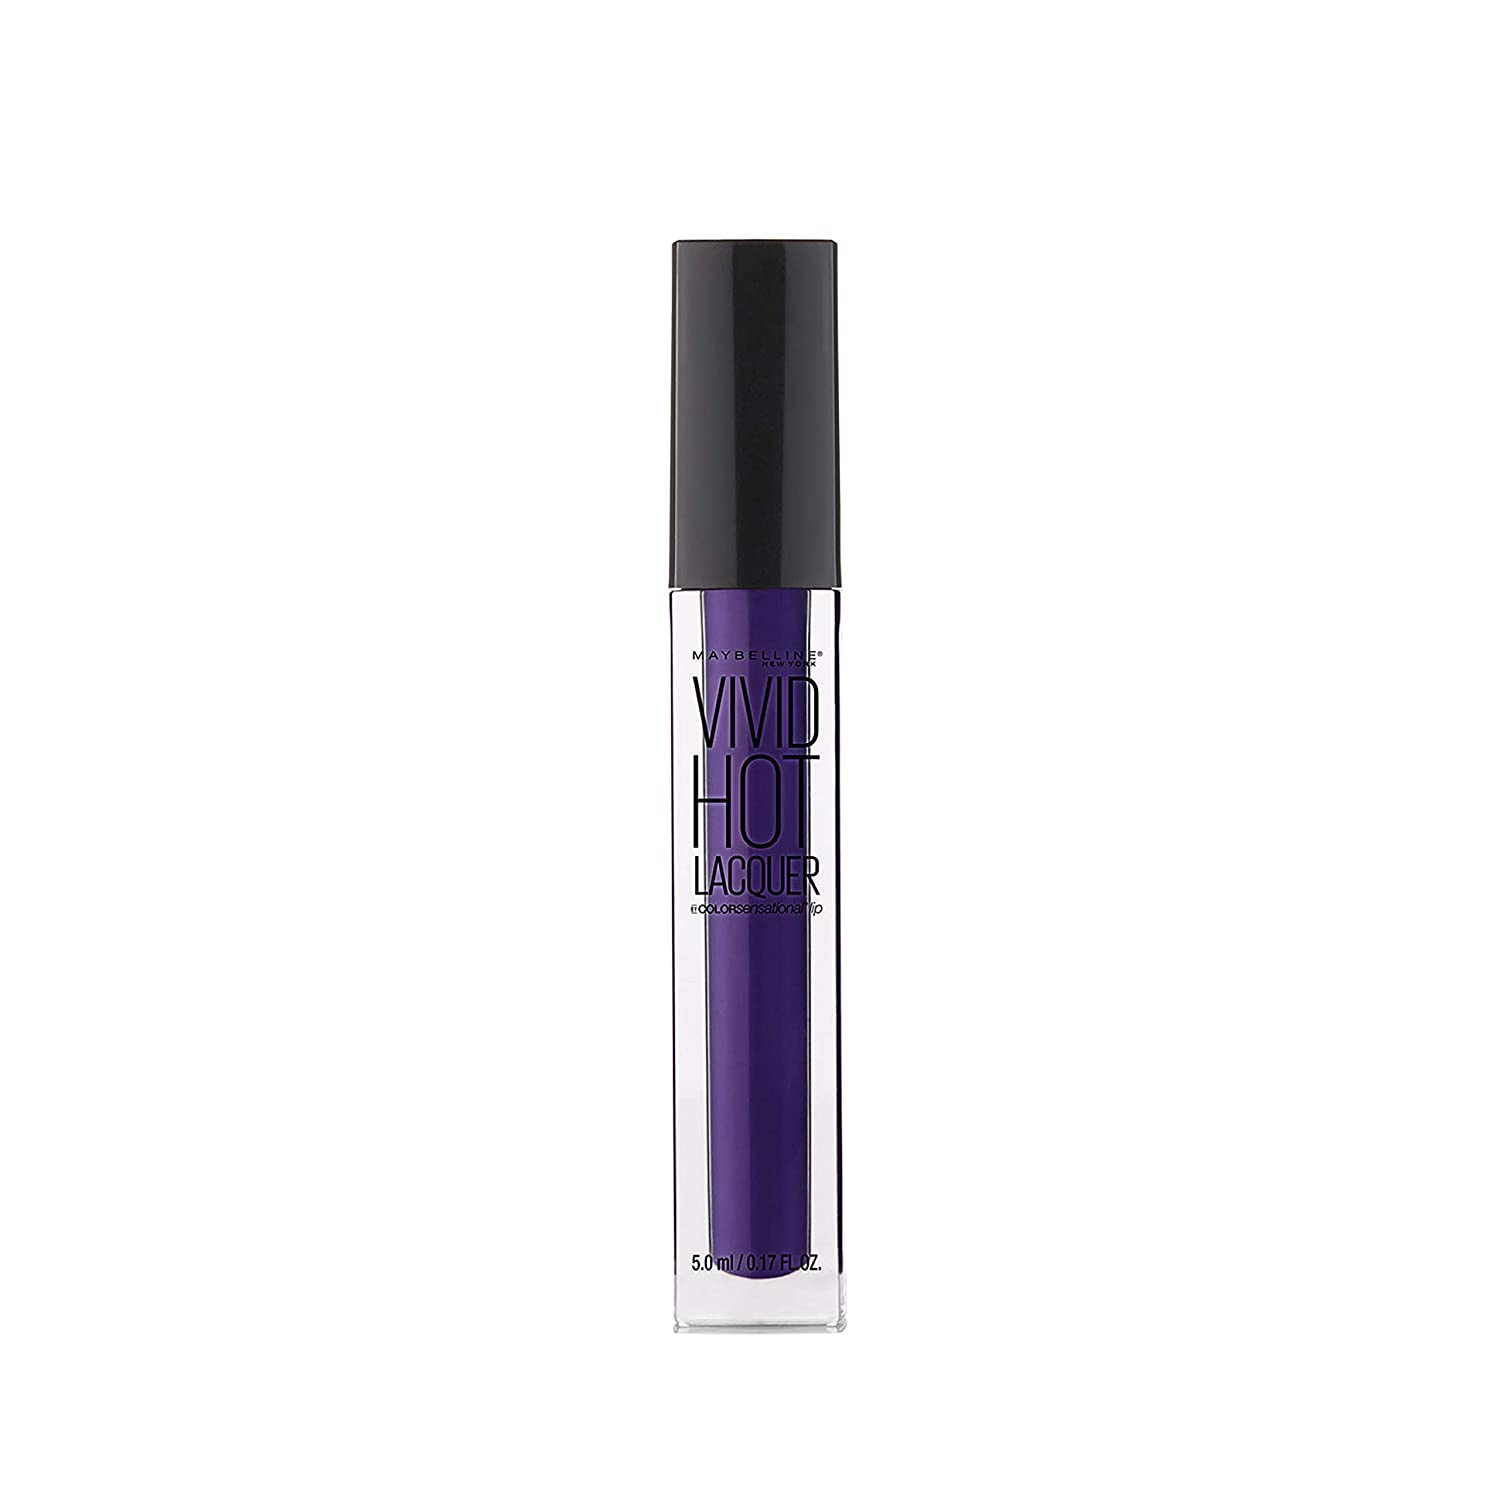 Maybelline New York Color Sensational Vivid Hot Lacquer Lip Gloss, So Hot, 0.17 Fluid Ounce K2370900